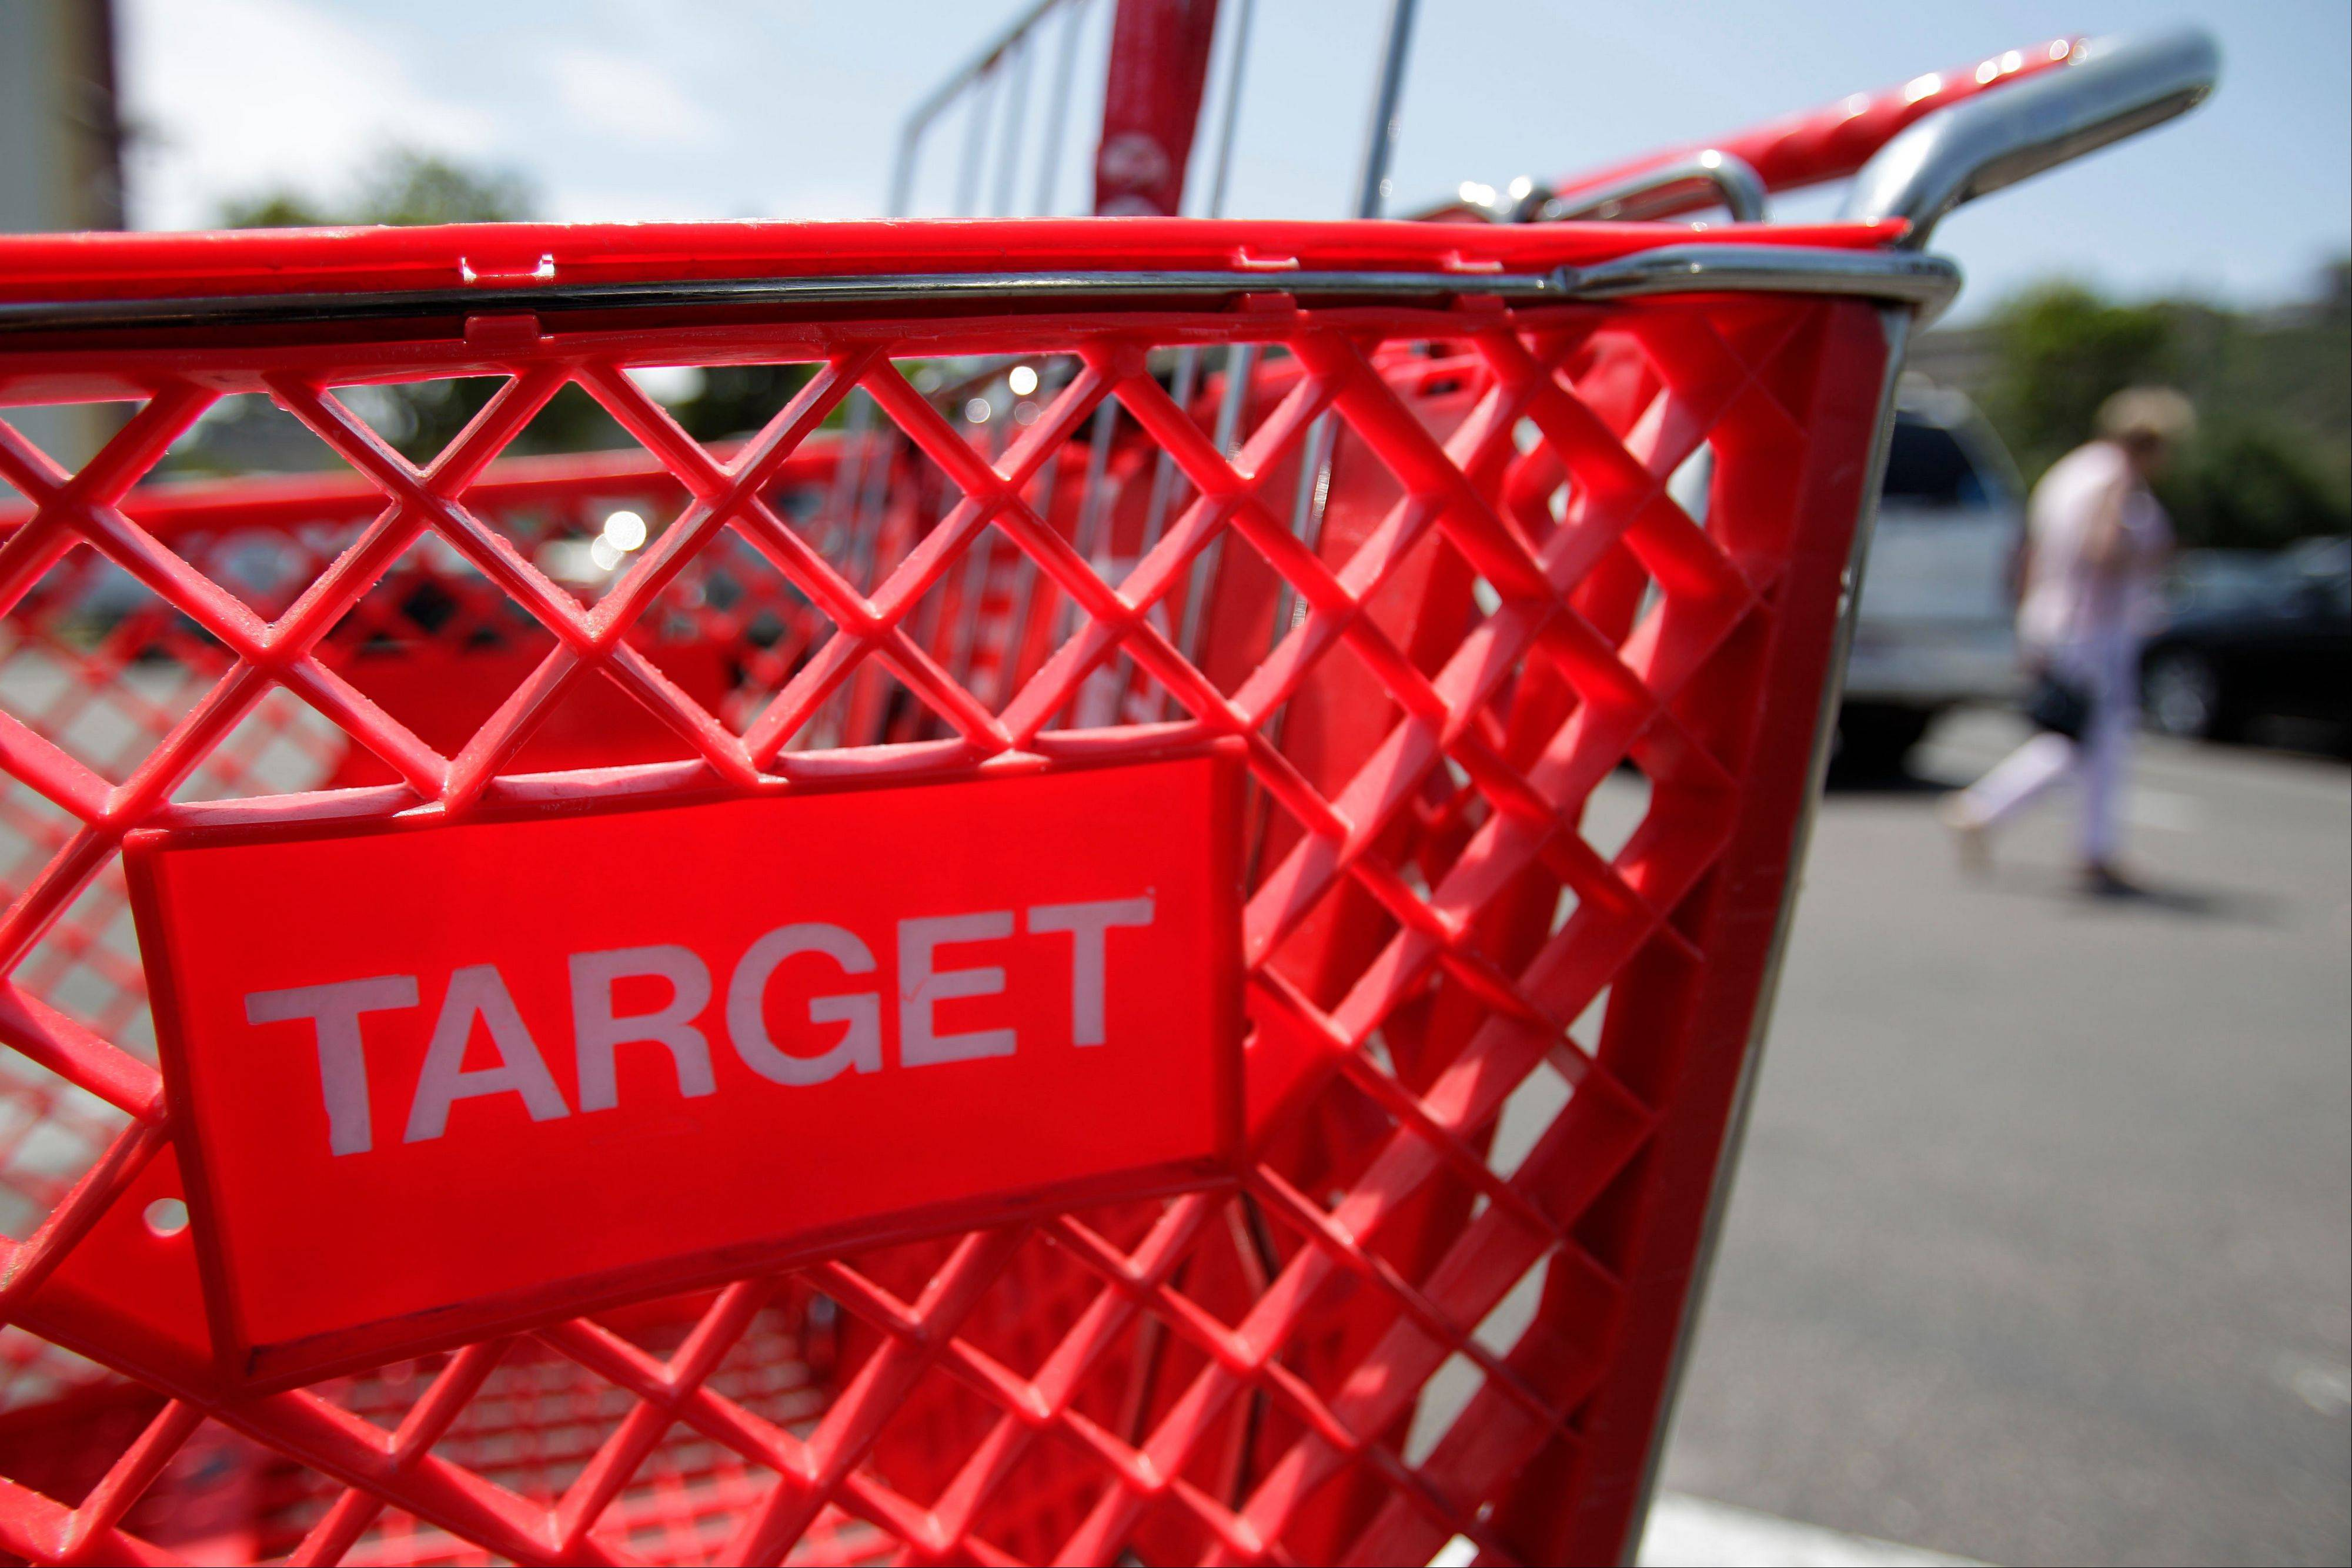 Target's first union election in two decades took place last month amid allegations of skimpy wages. Although it failed, the election is expected to spur other union opposition against Target throughout the country.